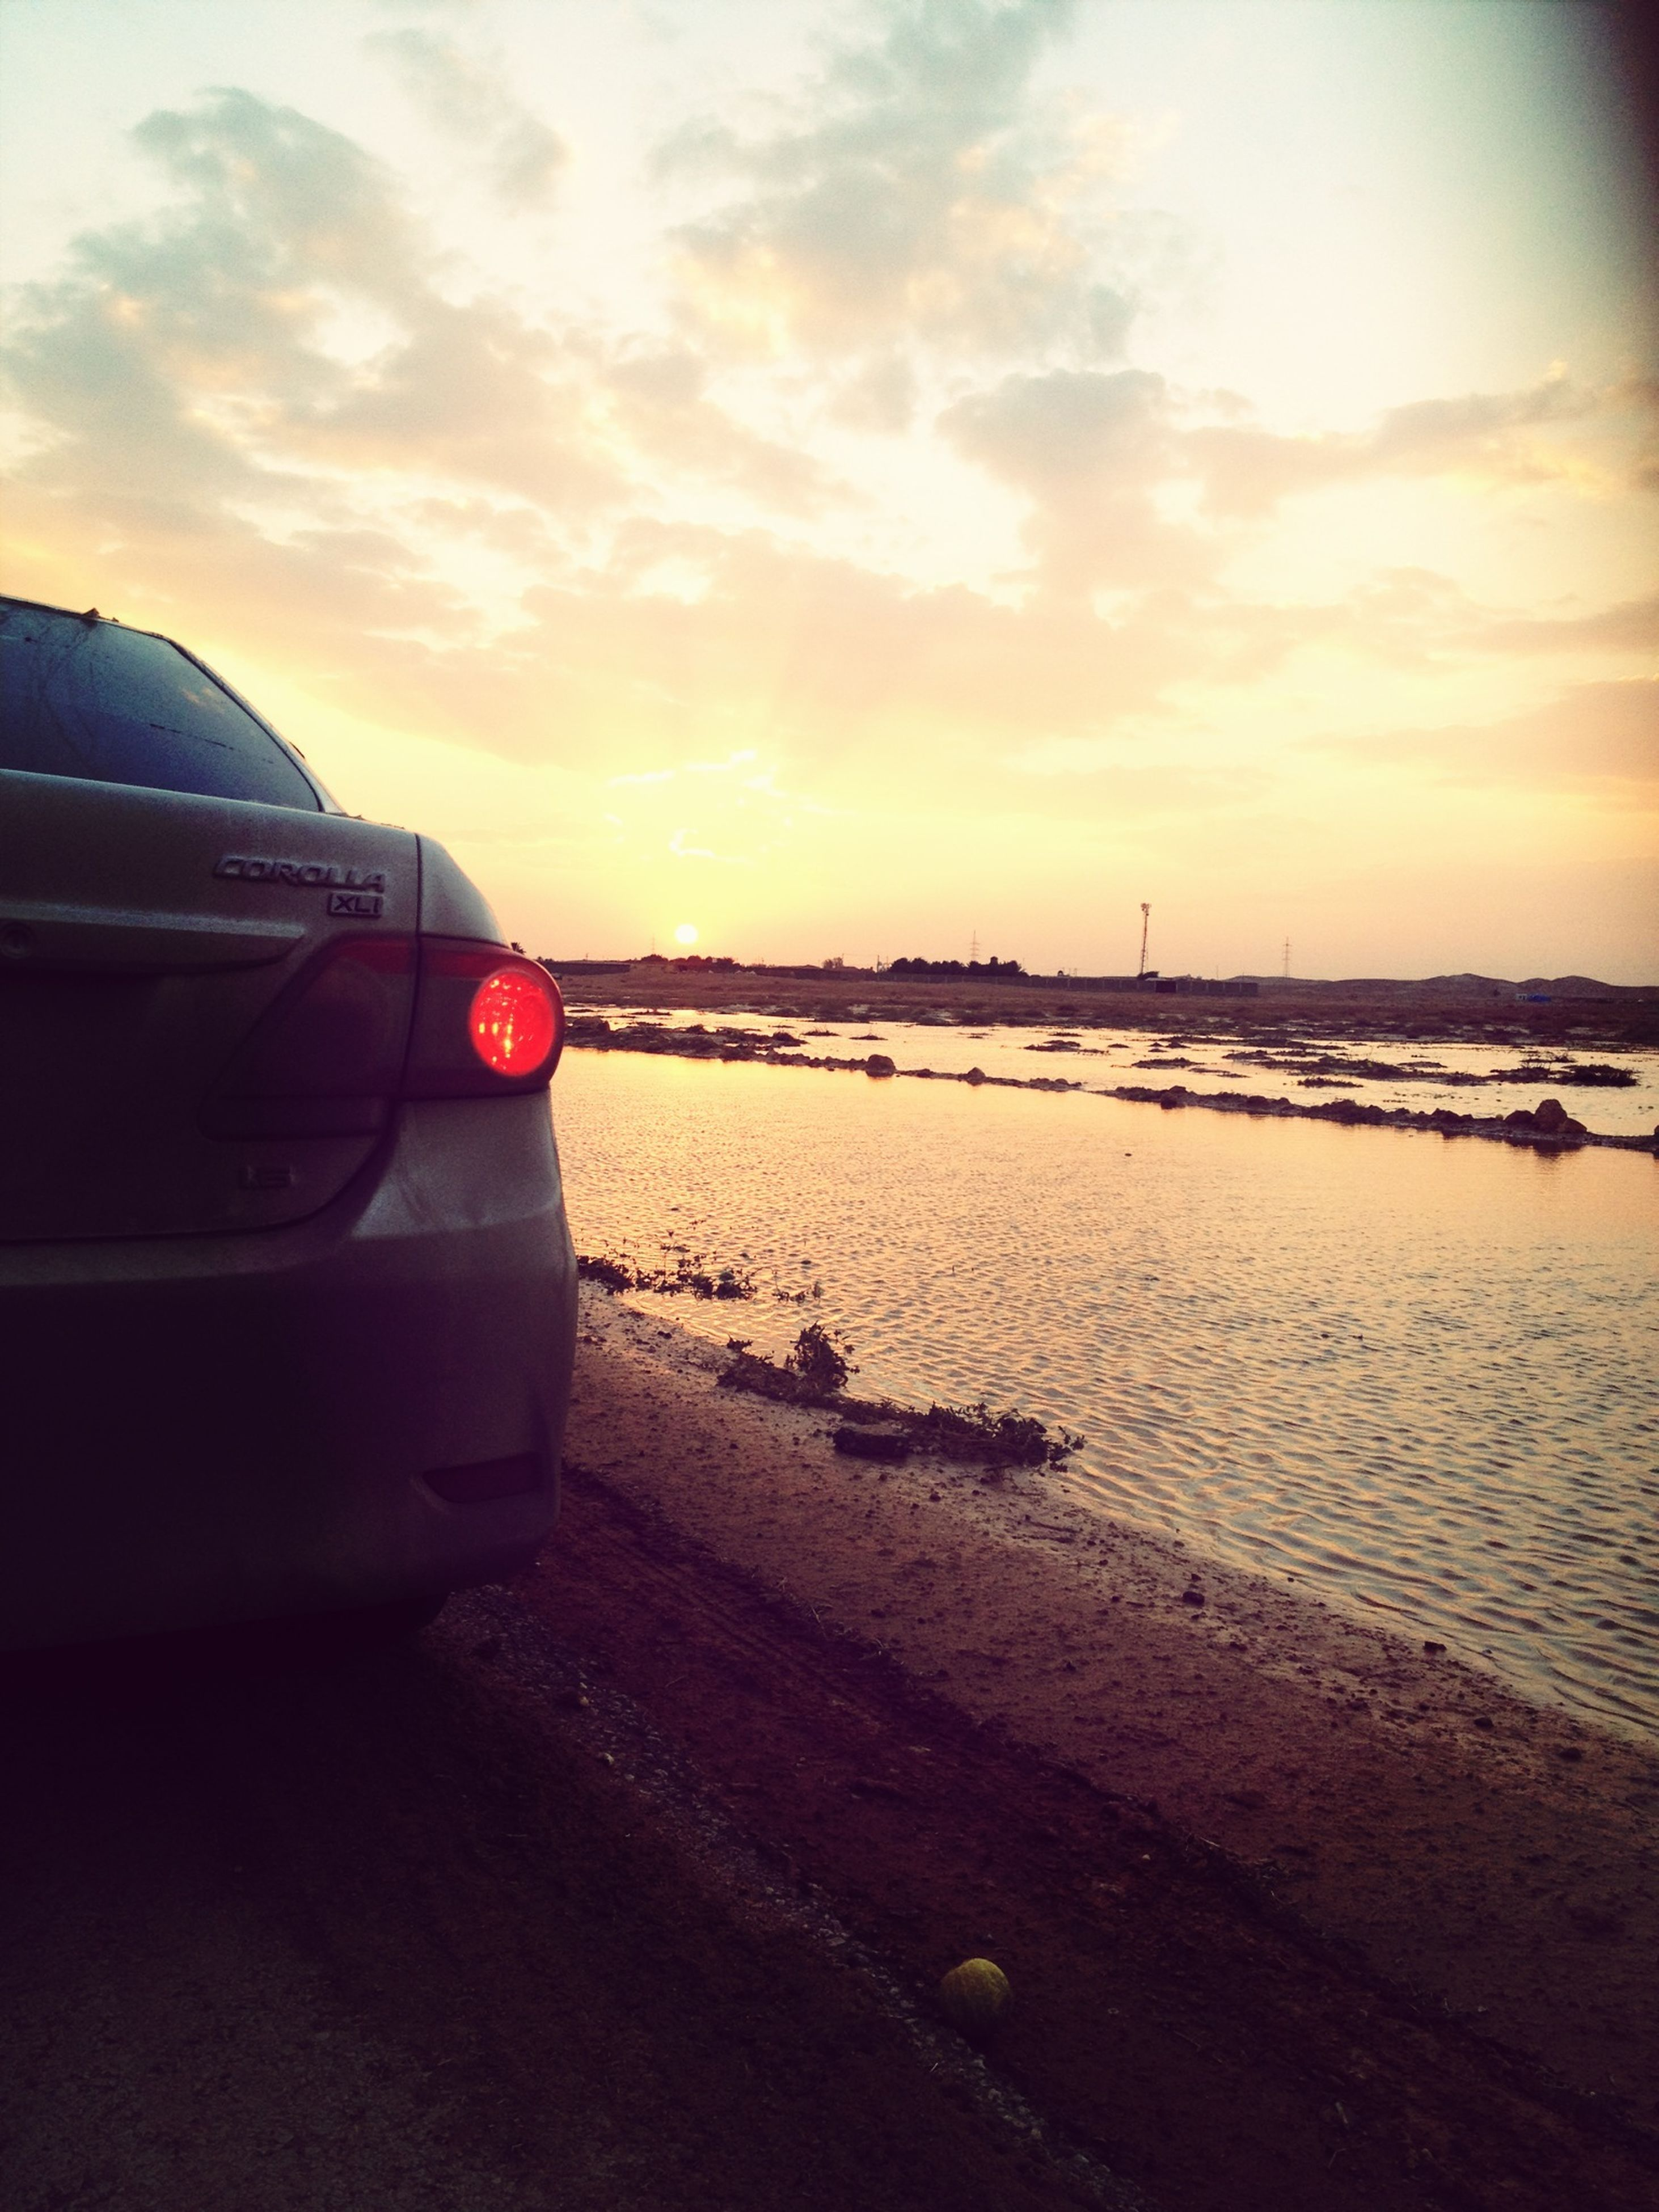 sunset, sky, transportation, sea, mode of transport, beach, orange color, water, cloud - sky, scenics, car, tranquility, tranquil scene, beauty in nature, land vehicle, nature, shore, horizon over water, cloud, sand